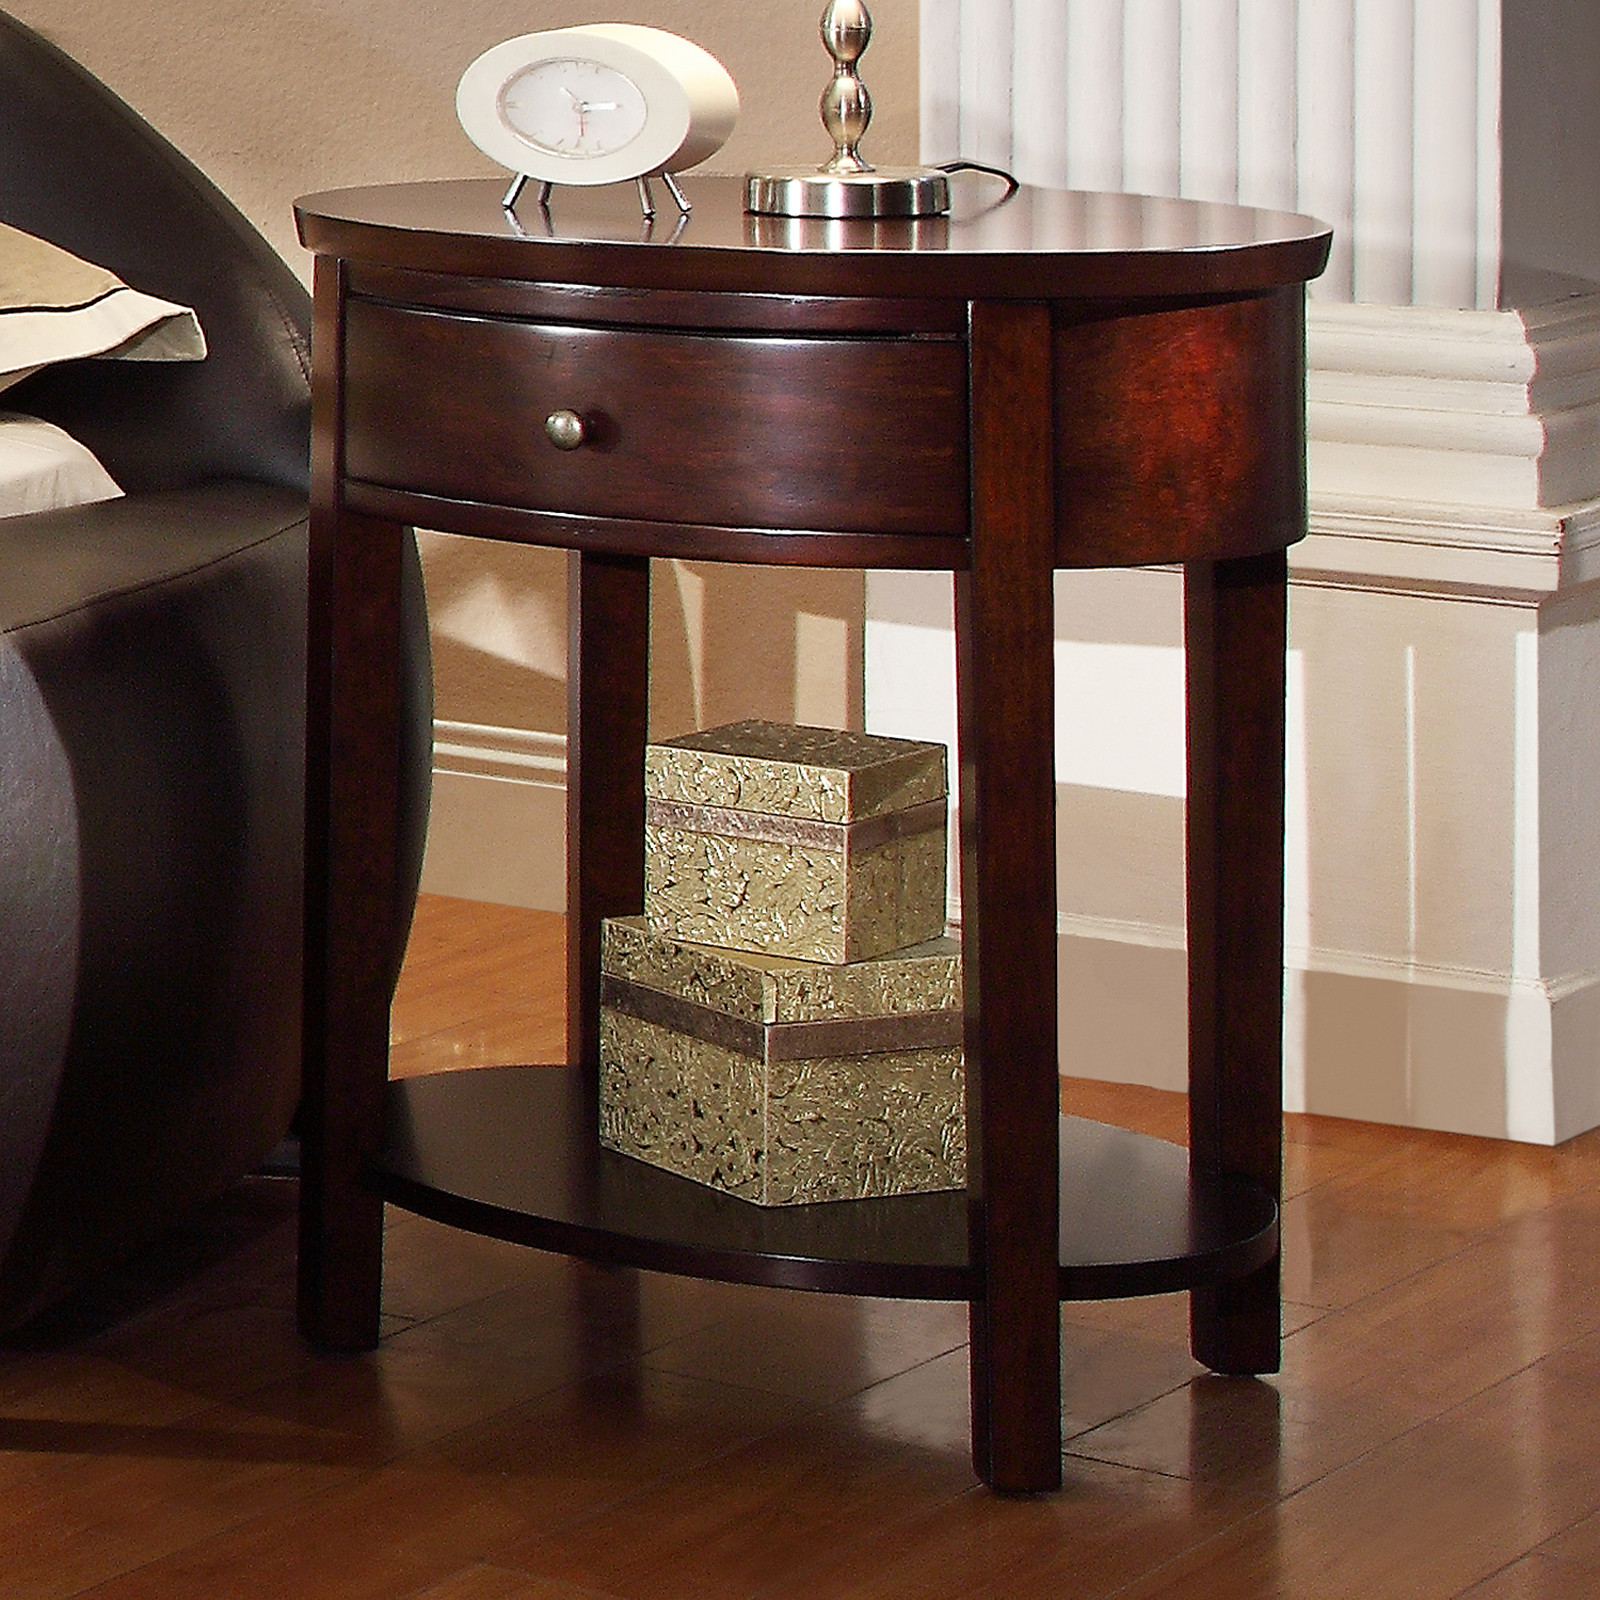 beautiful oxford creek sienna oval espresso accent table nightstand trestle measurements cool round tablecloths beach themed floor lamps wall clock safavieh inga gold coffee